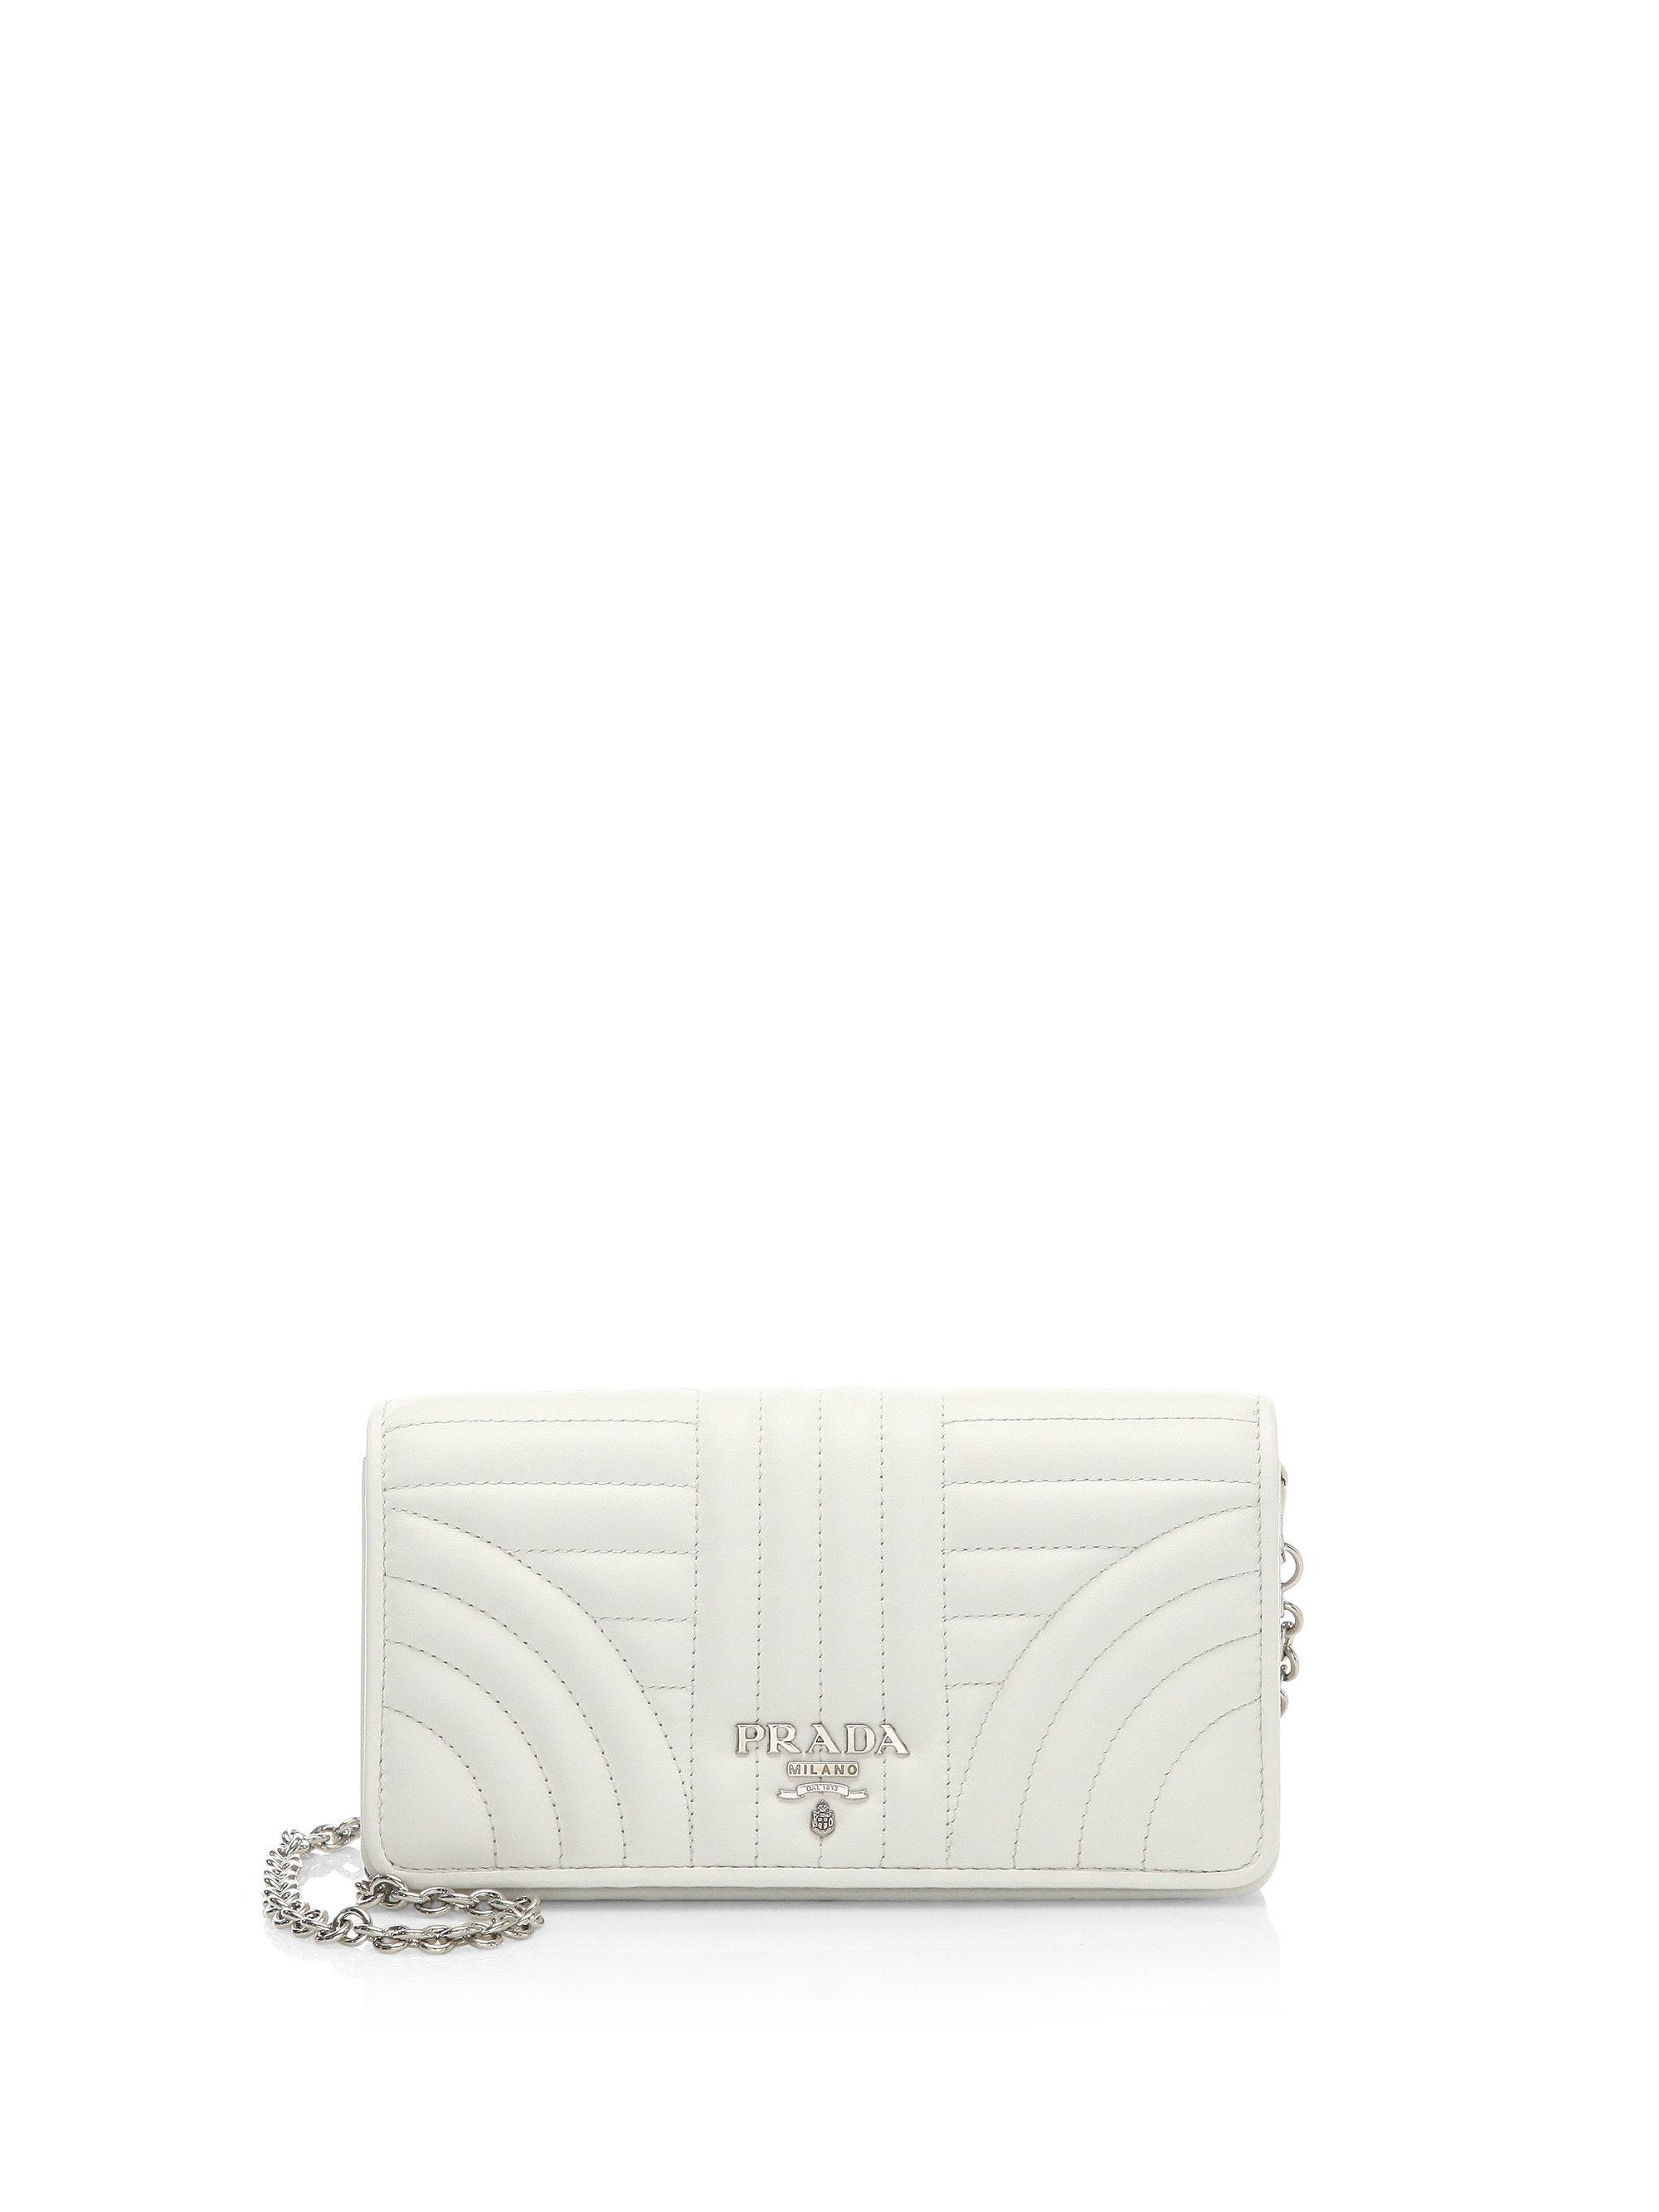 1c5a18e75c2c italy prada saffiano lux chain crossbody bag pink 5a76d eccdc; promo code  prada quilted crossbody wallet on chain in white lyst 523f3 1ca46